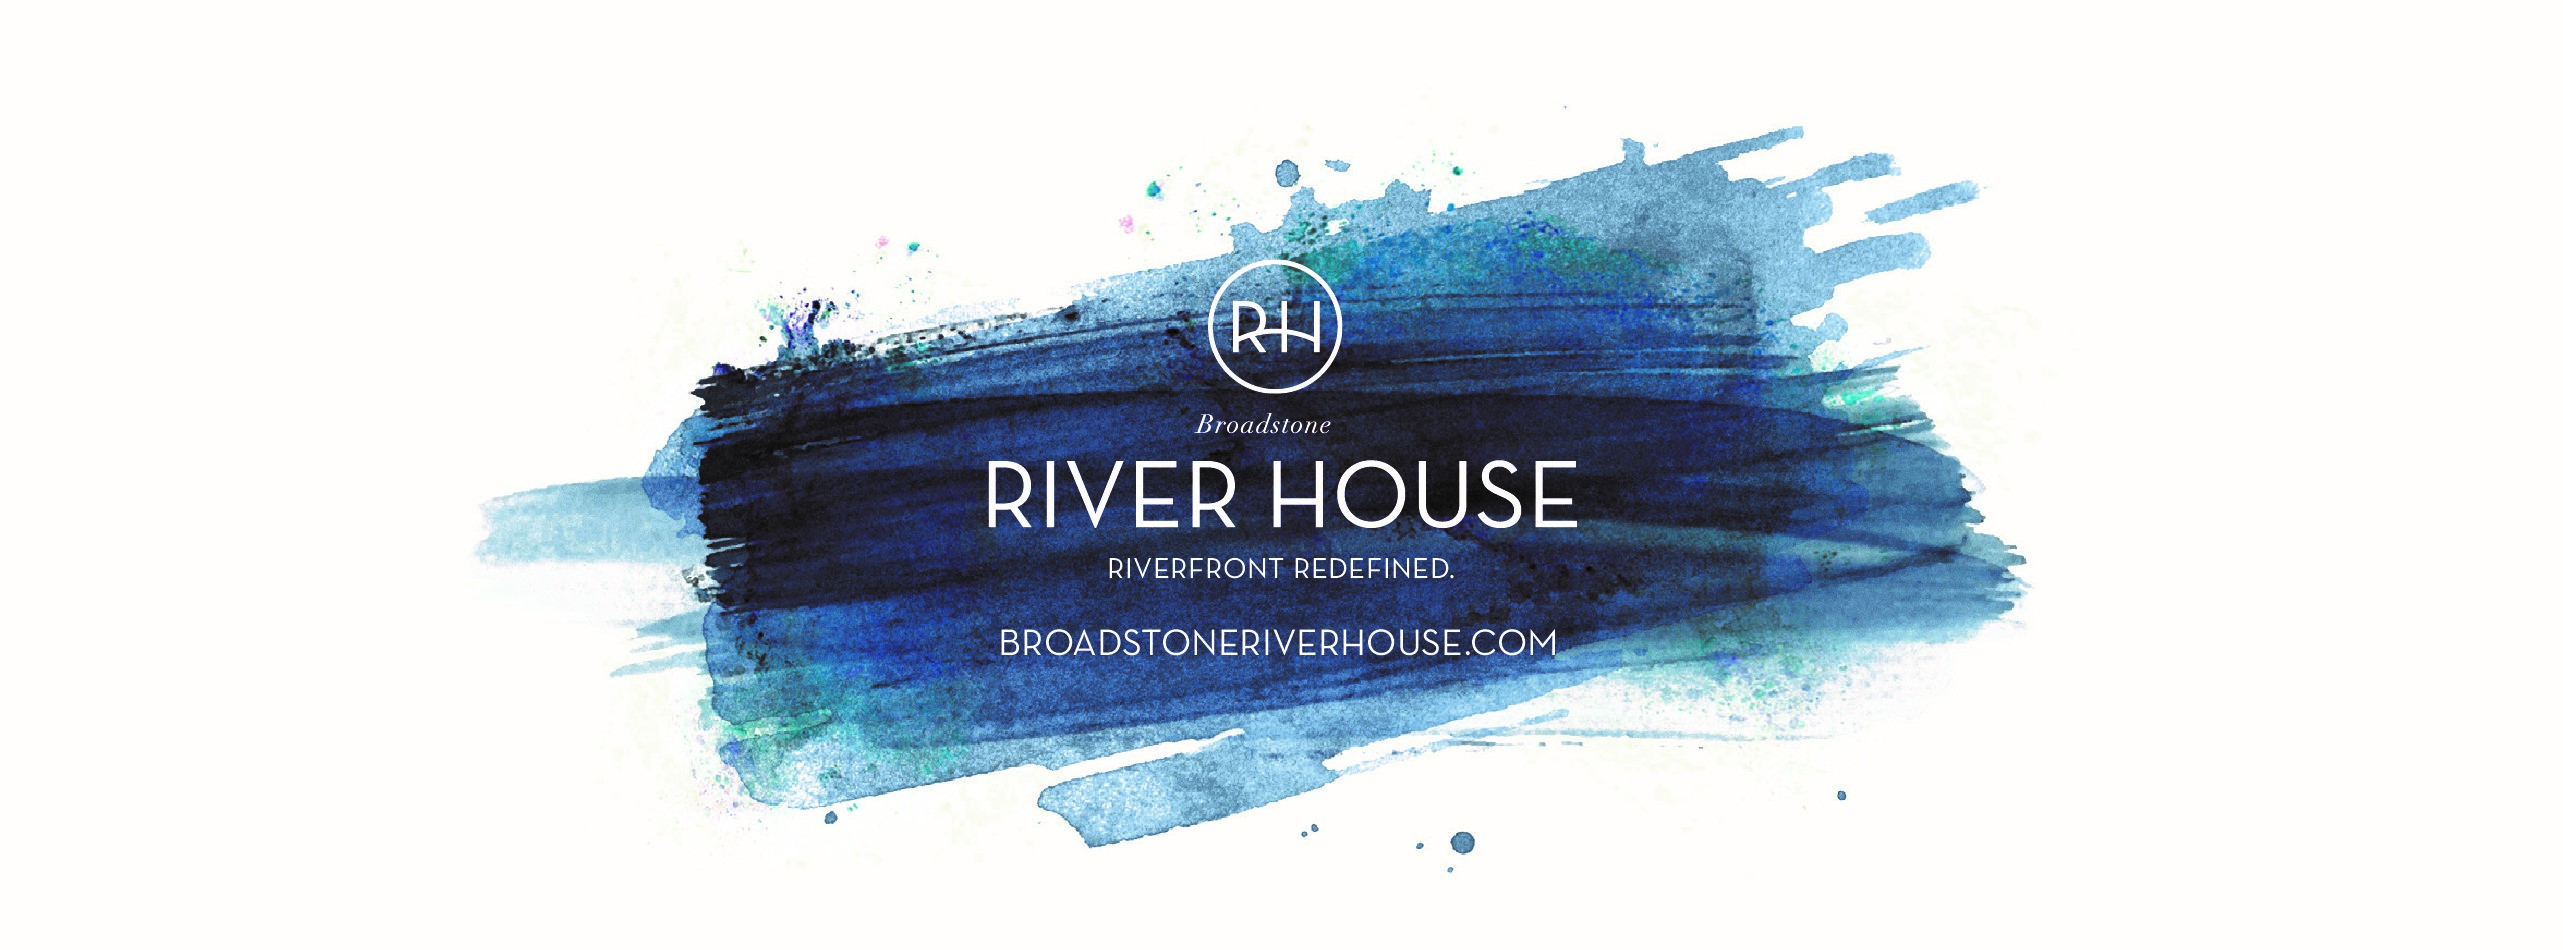 Broadstone River House